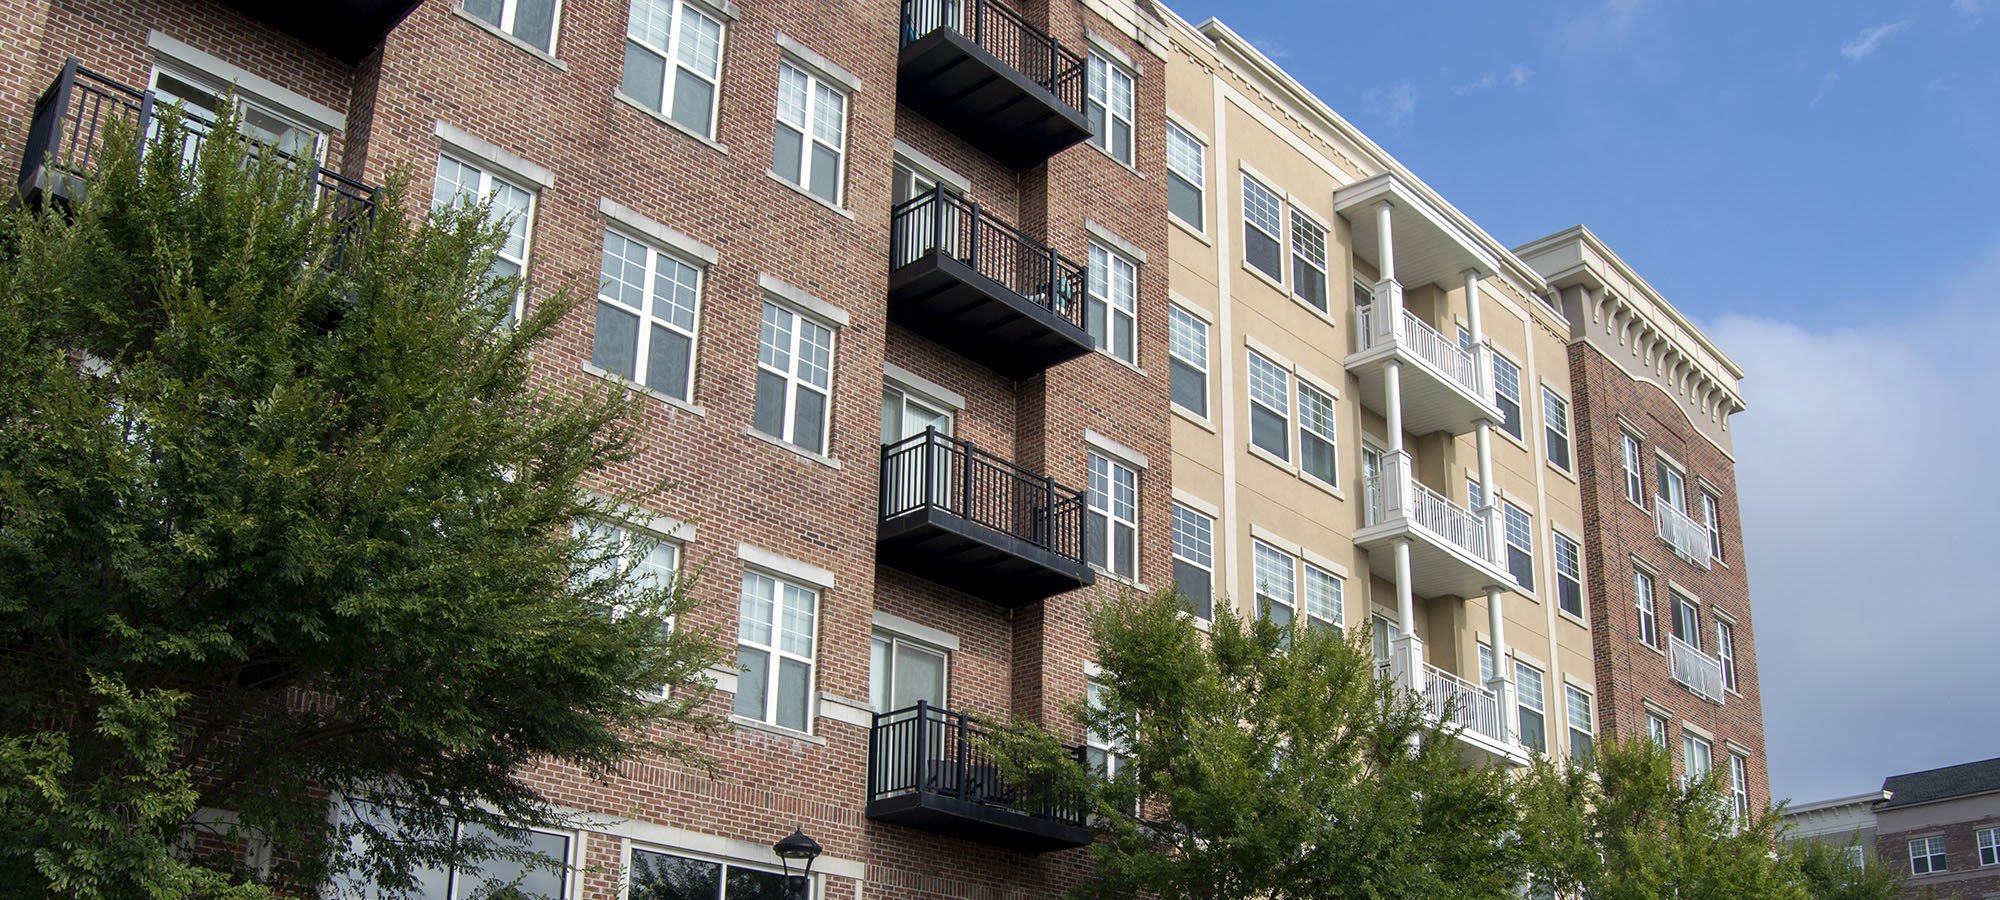 Learn more about our luxury apartments in Glen Allen, VA.